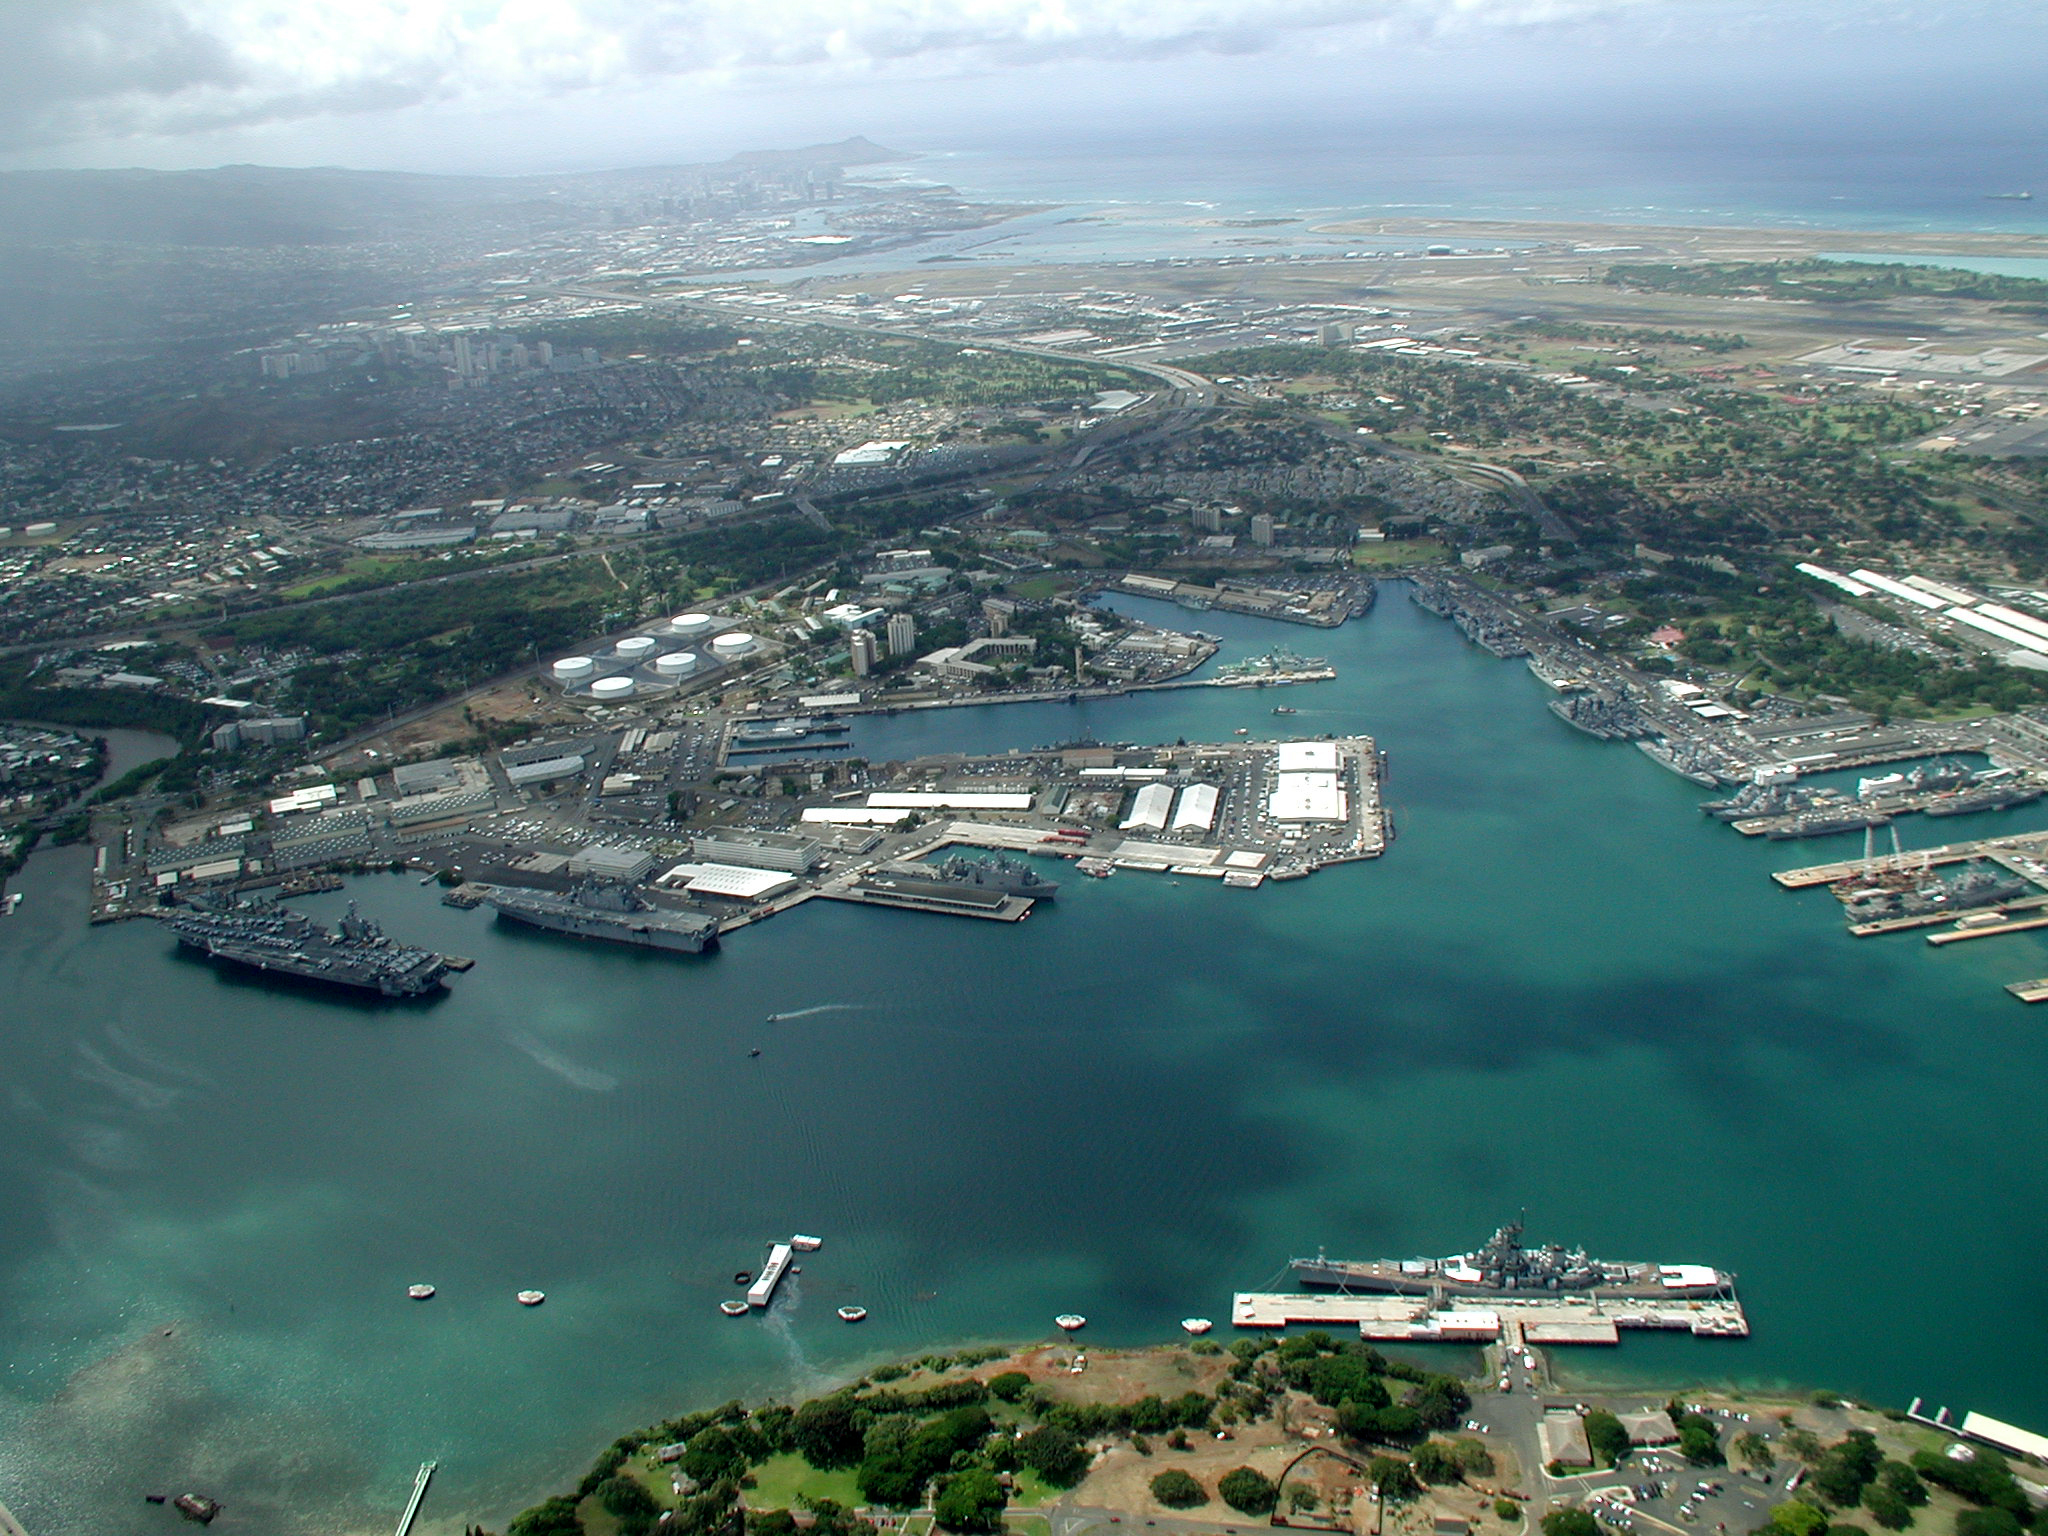 helicopter norfolk with File Us Navy 040630 N 2911p 004 Ships From Seven Participating Nations Sit Pier Side At Pearl Harbor  Hawaii  Awaiting The Start Of Exercise Rim Of The Pacific  Rimpac  2004 on French Join British Soldiers For Big Guns Return To Norfolk likewise File us navy 040630 N 2911p 004 ships from seven participating nations sit pier side at pearl harbor  hawaii  awaiting the start of exercise rim of the pacific  rimpac  2004 likewise Fn 6 man portable air defense missile system technical data sheet specifications pictures video together with Queen Elizabeths Coronation What We Can Learn From 1953 besides Helicopter Mine Countermeasures Squadron 15.